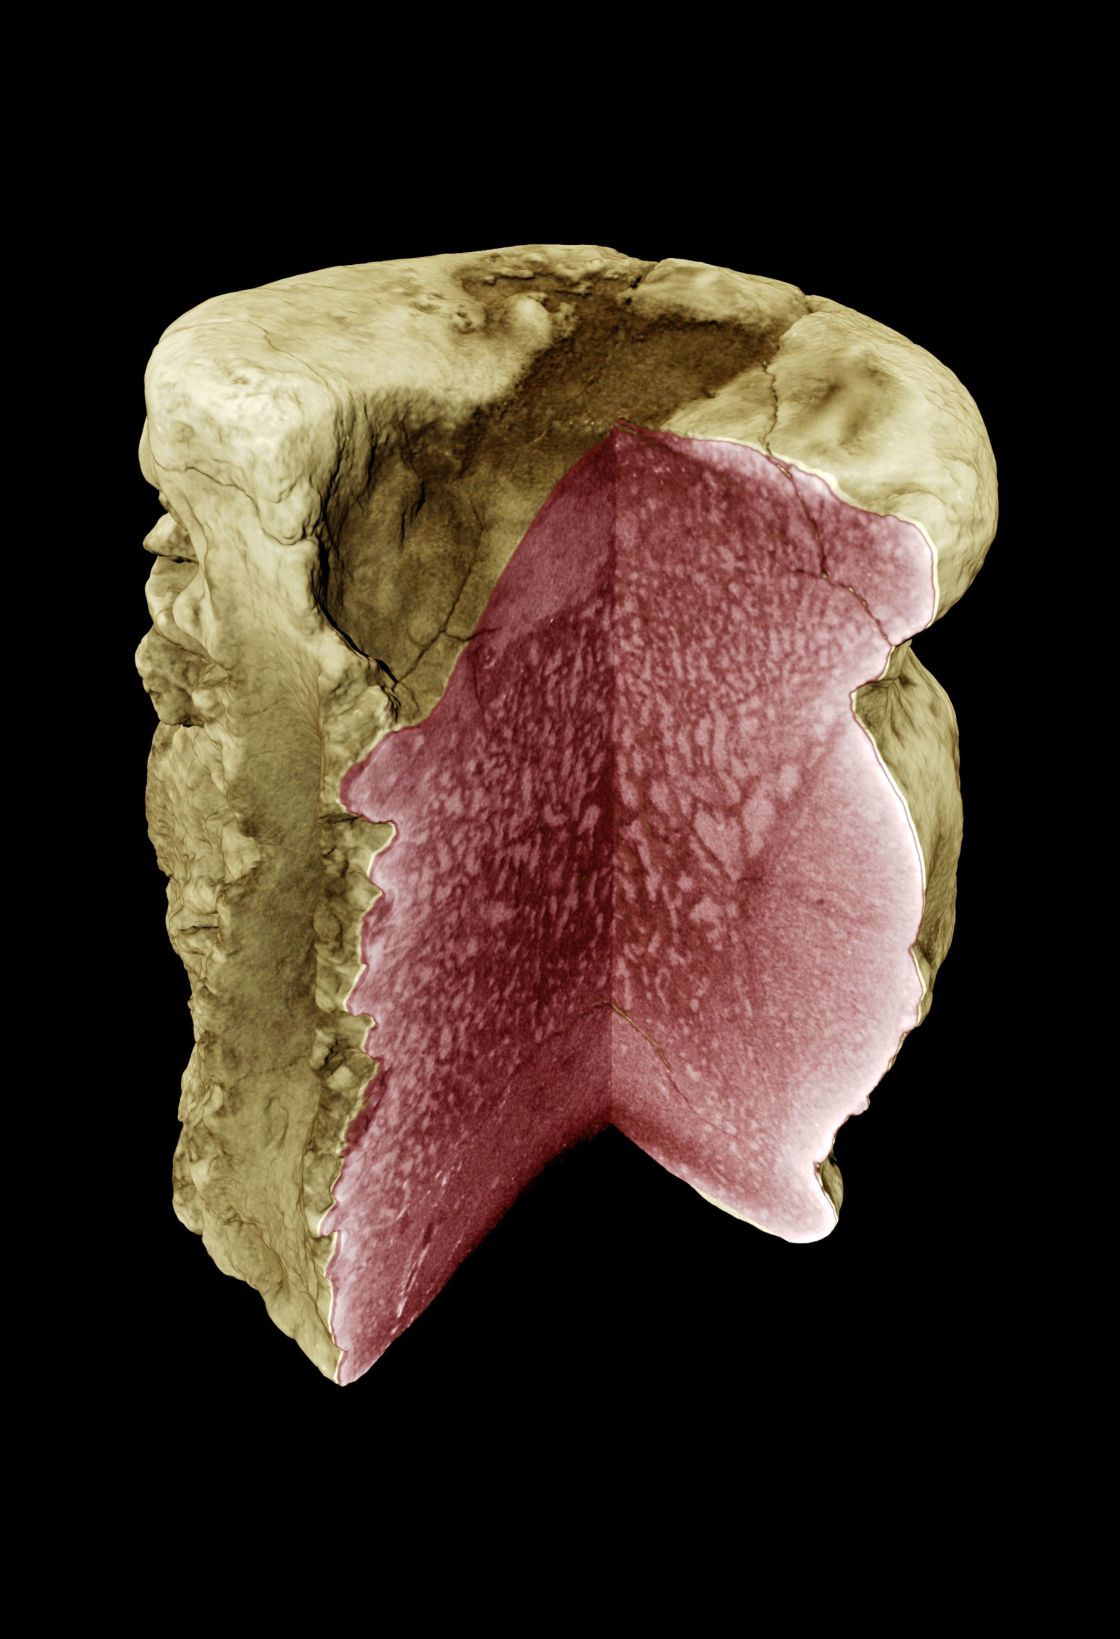 Synchrotron holotomography was used to visualise pathological structural changes in a dinosaur bone - enlarged view